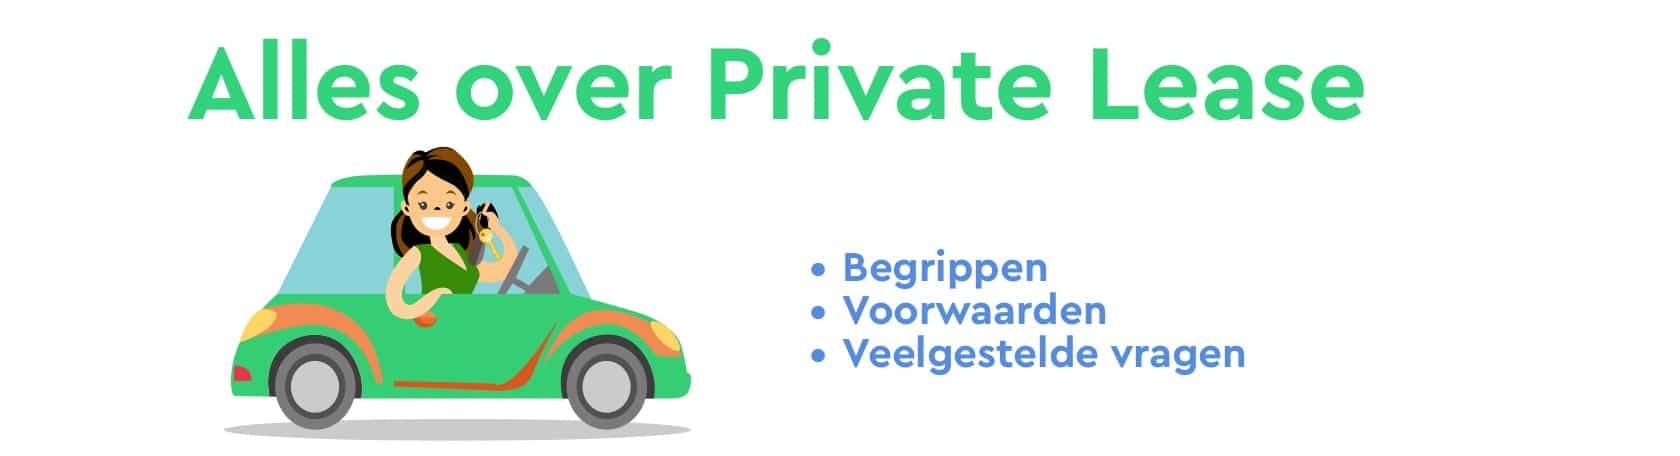 Alles over Private Lease